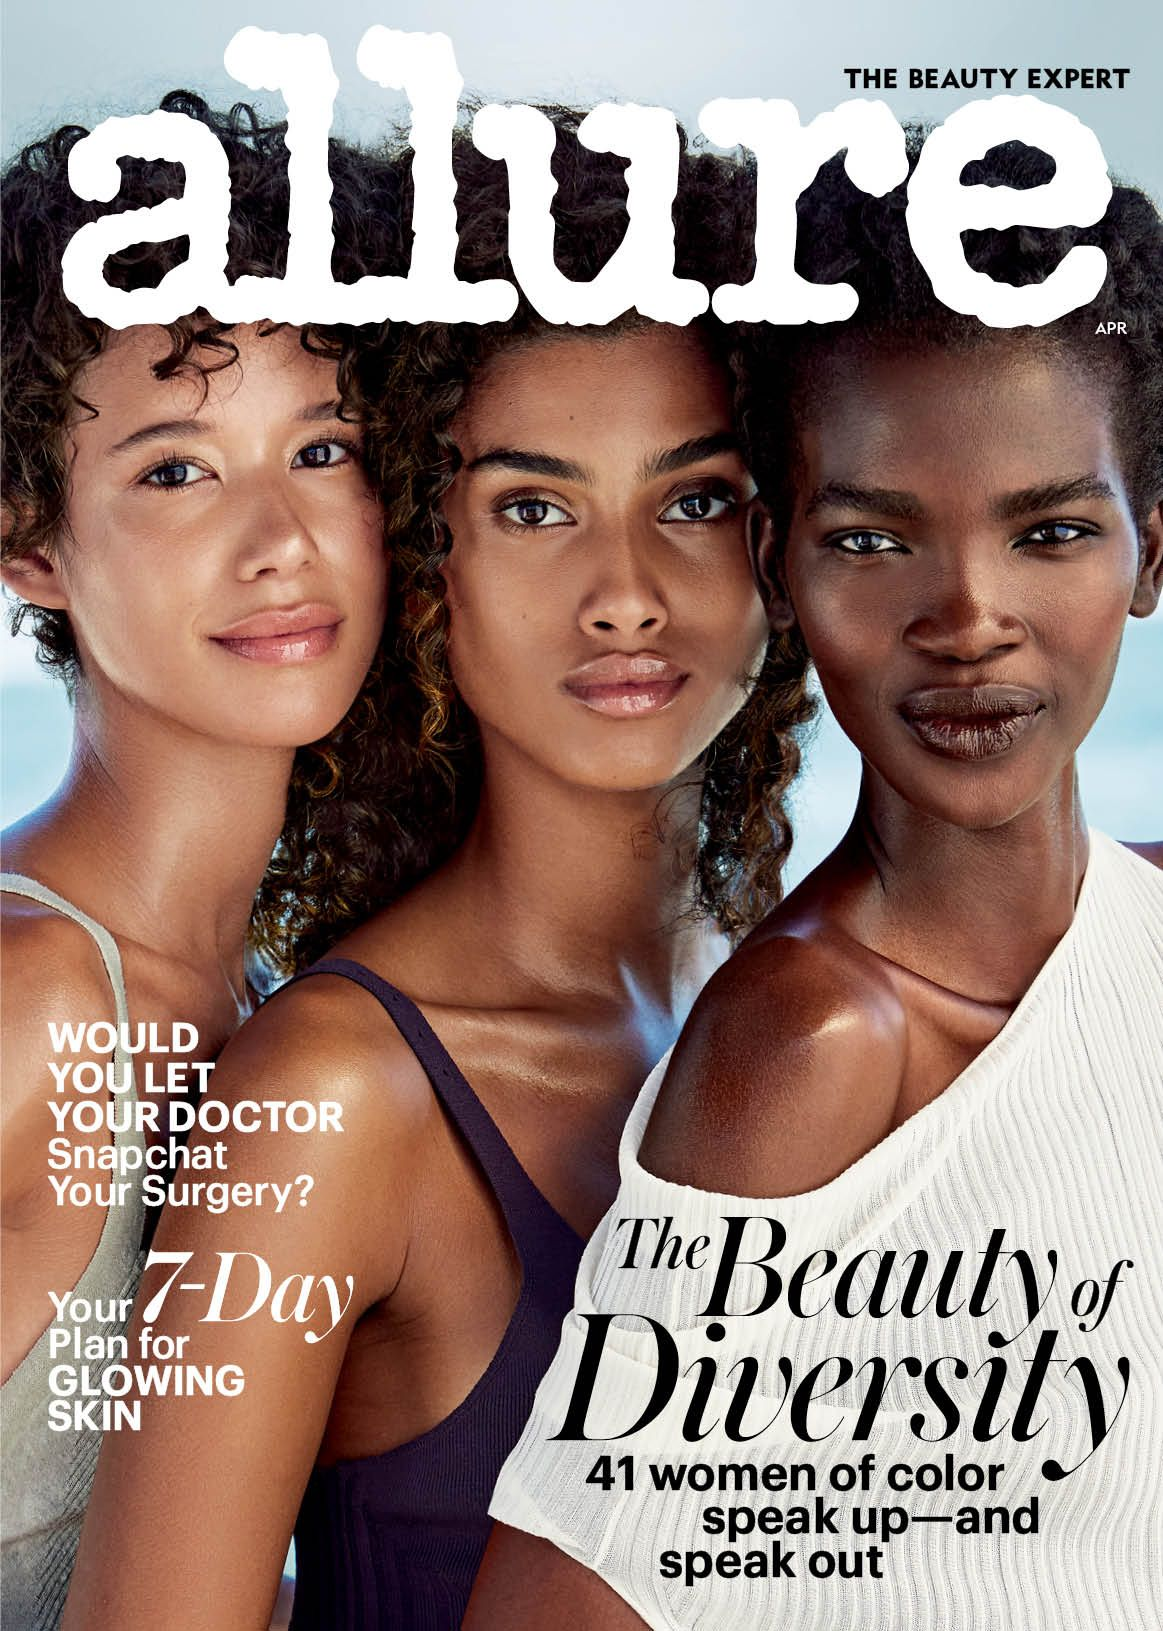 For Our April 2017 Cover Story Allure Asked 41 Women Of Color To Tell Us The Story Of Their Lives T Allure Magazine Beauty Allure Magazine Cover Beauty Expert